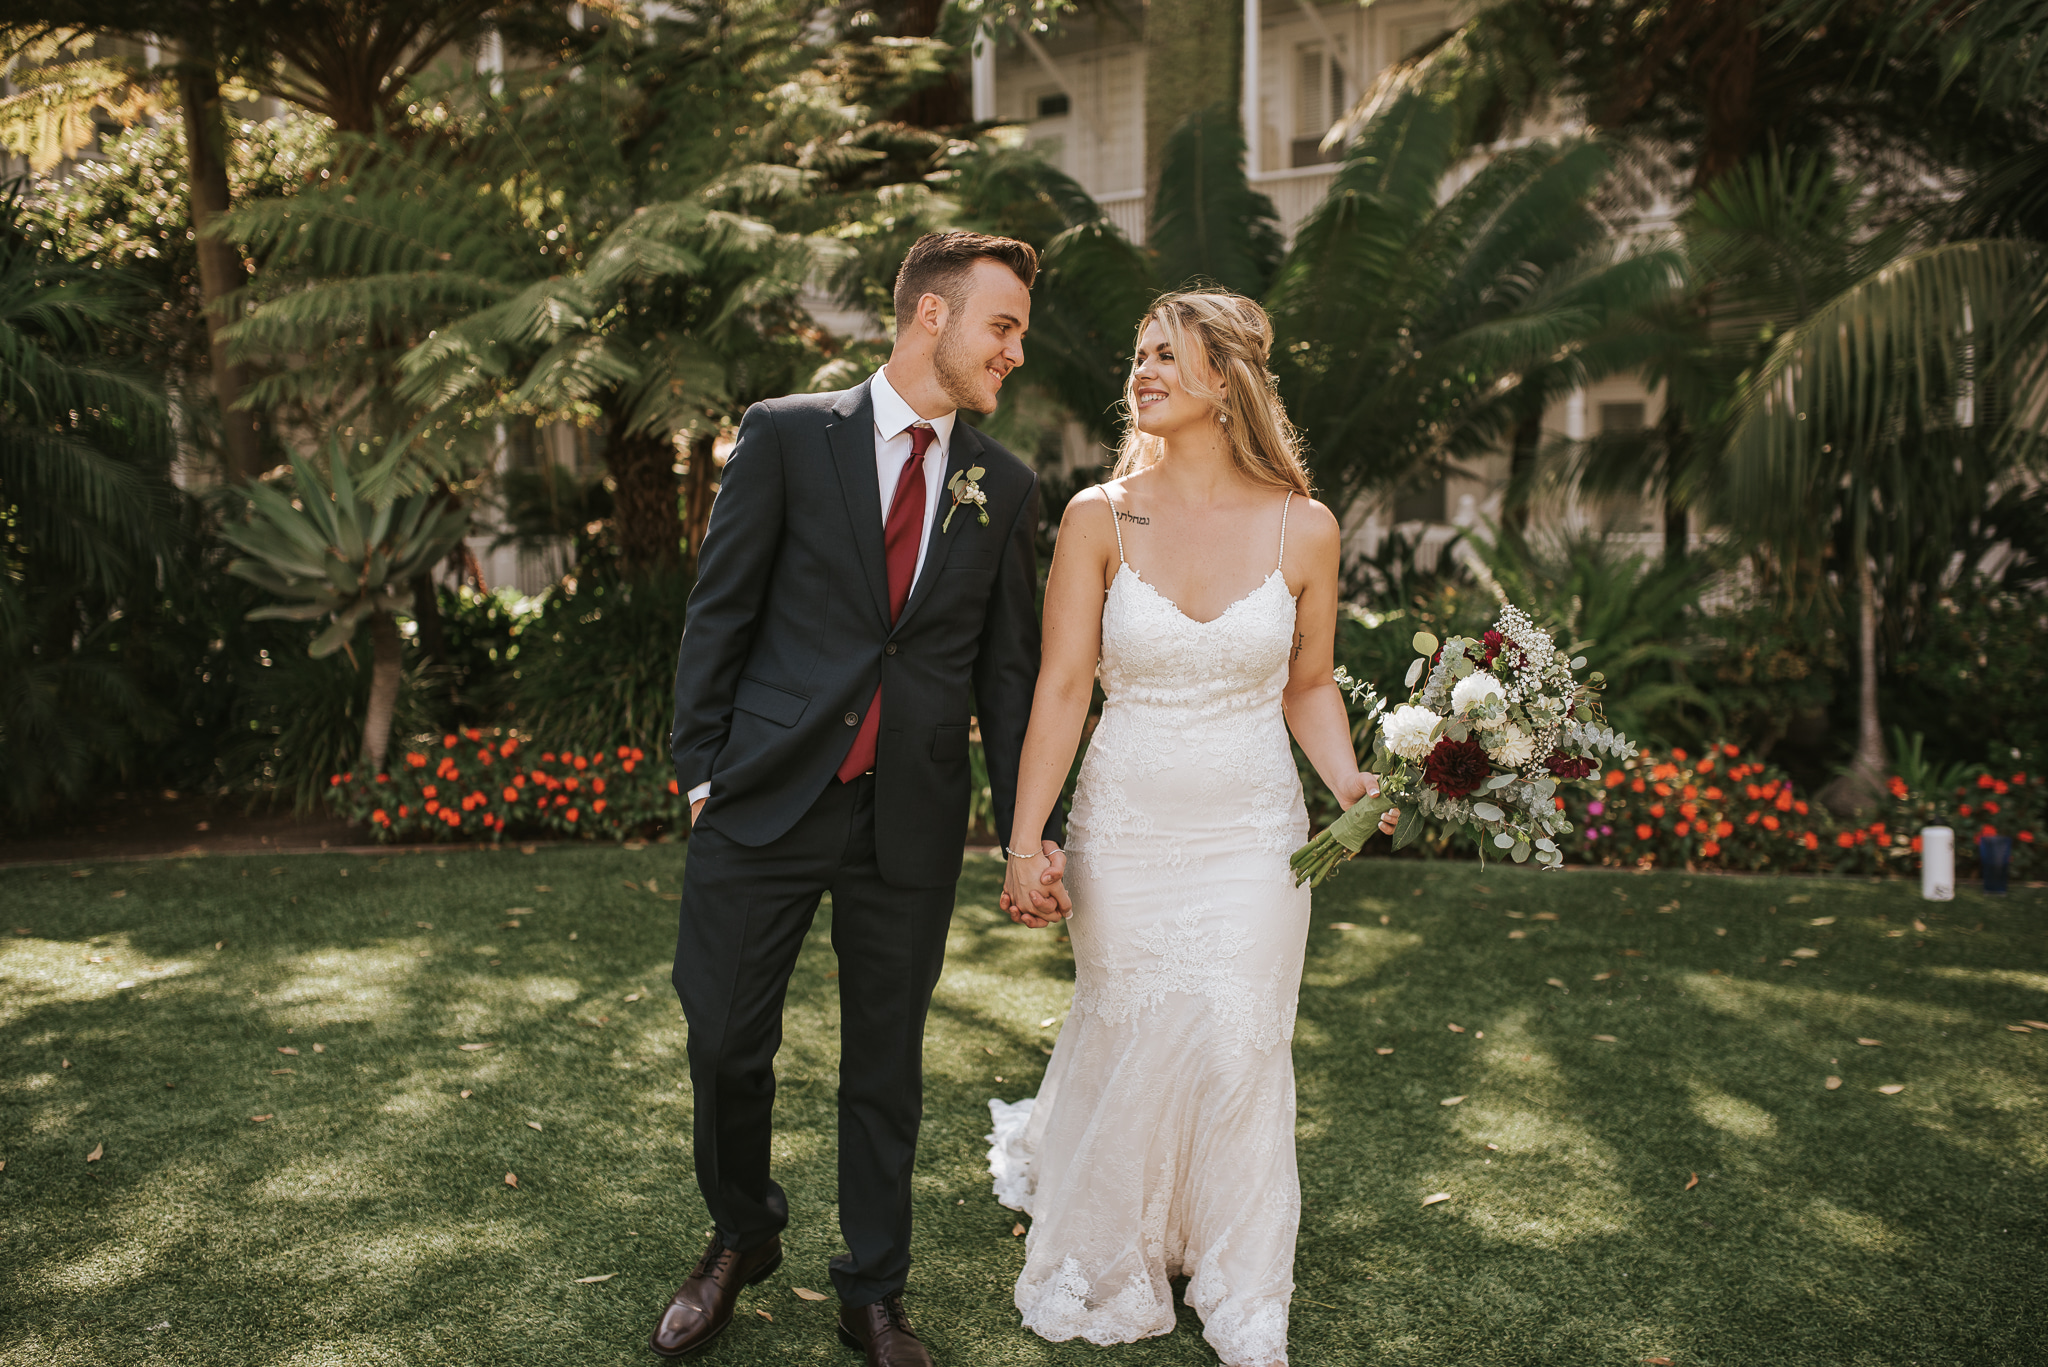 Click to view the whole downtown san diego wedding!